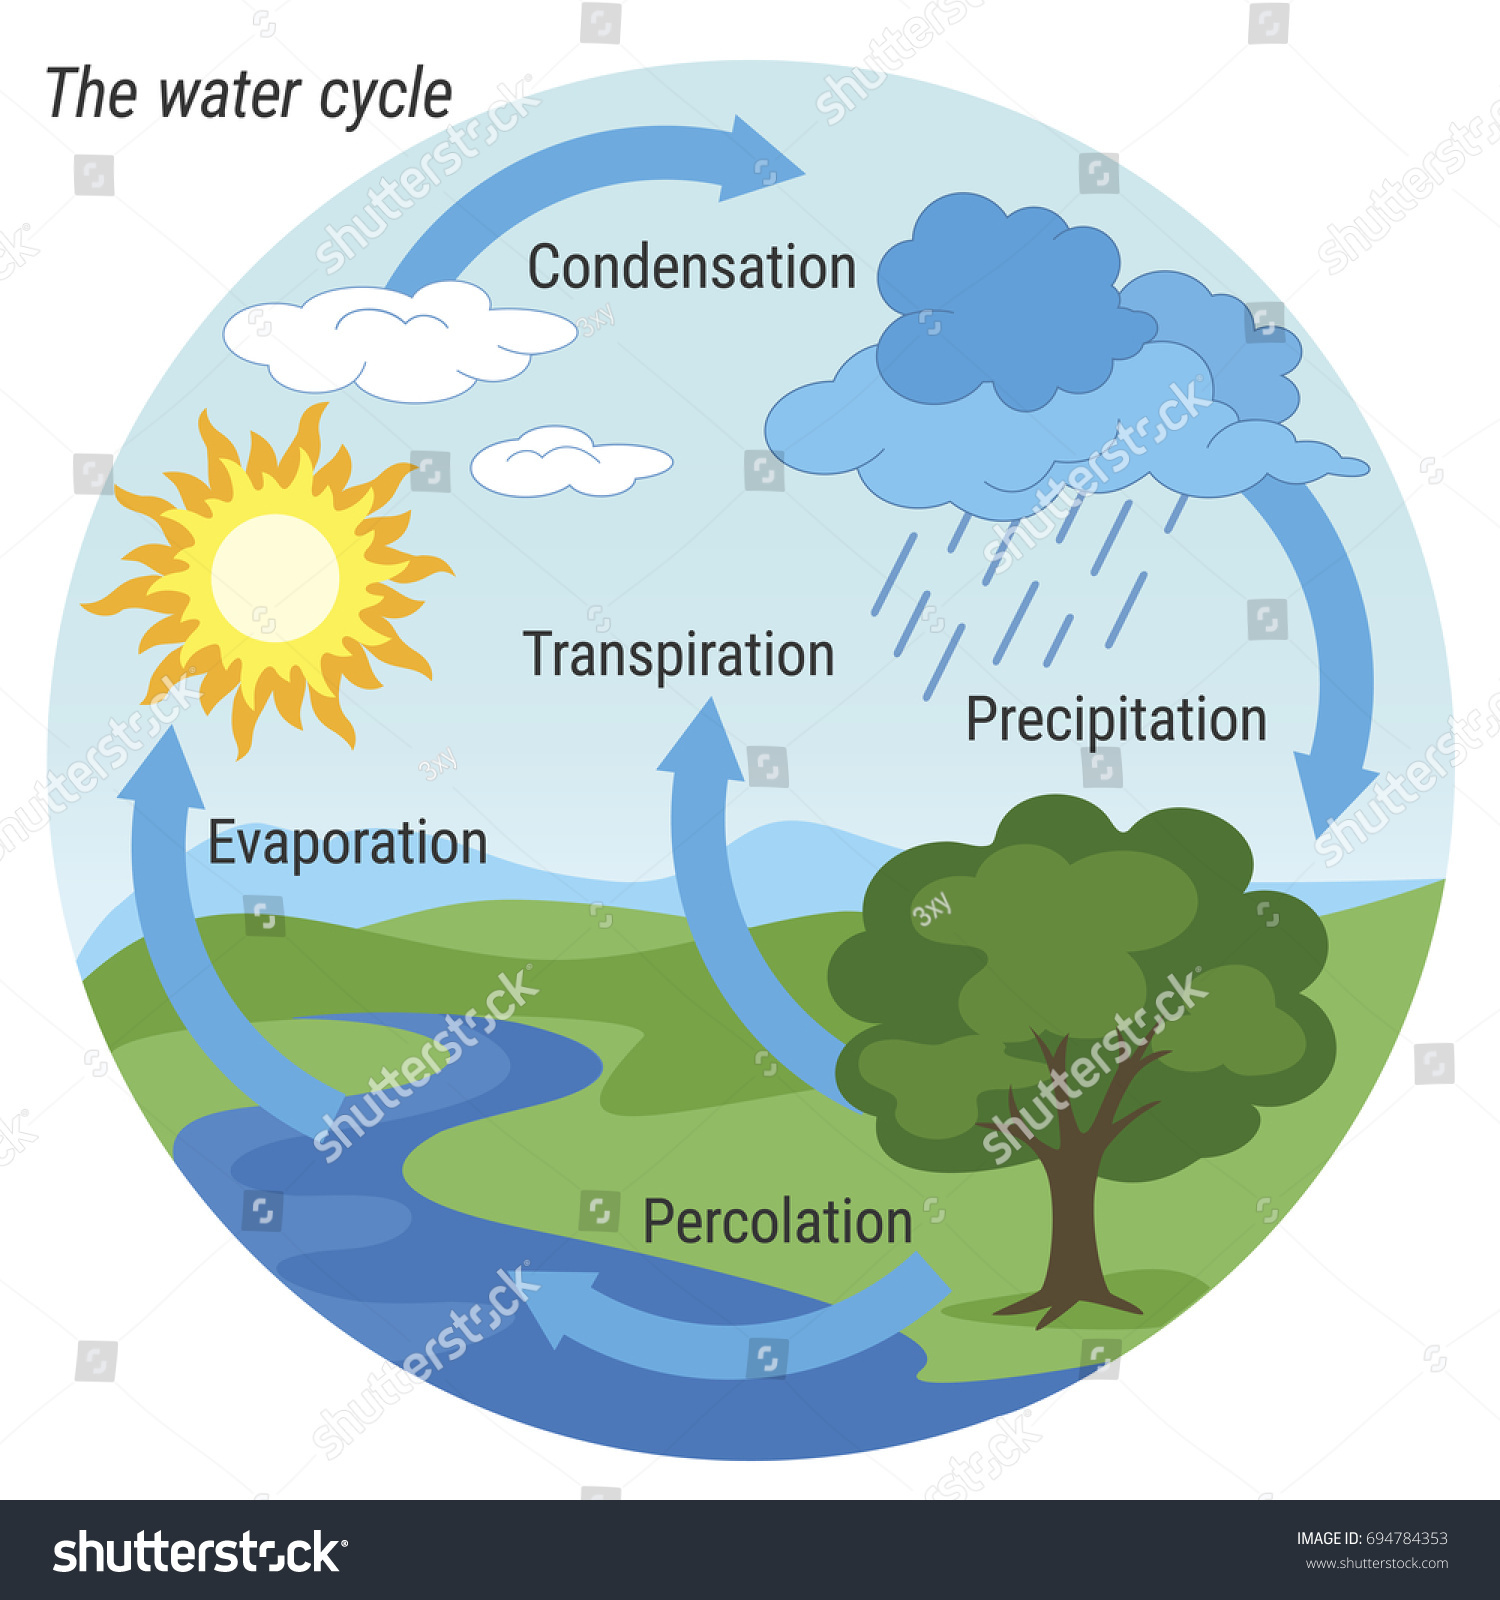 explain water cycle with diagram 7 pin trailer socket wiring ireland vector schematic representation nature stock